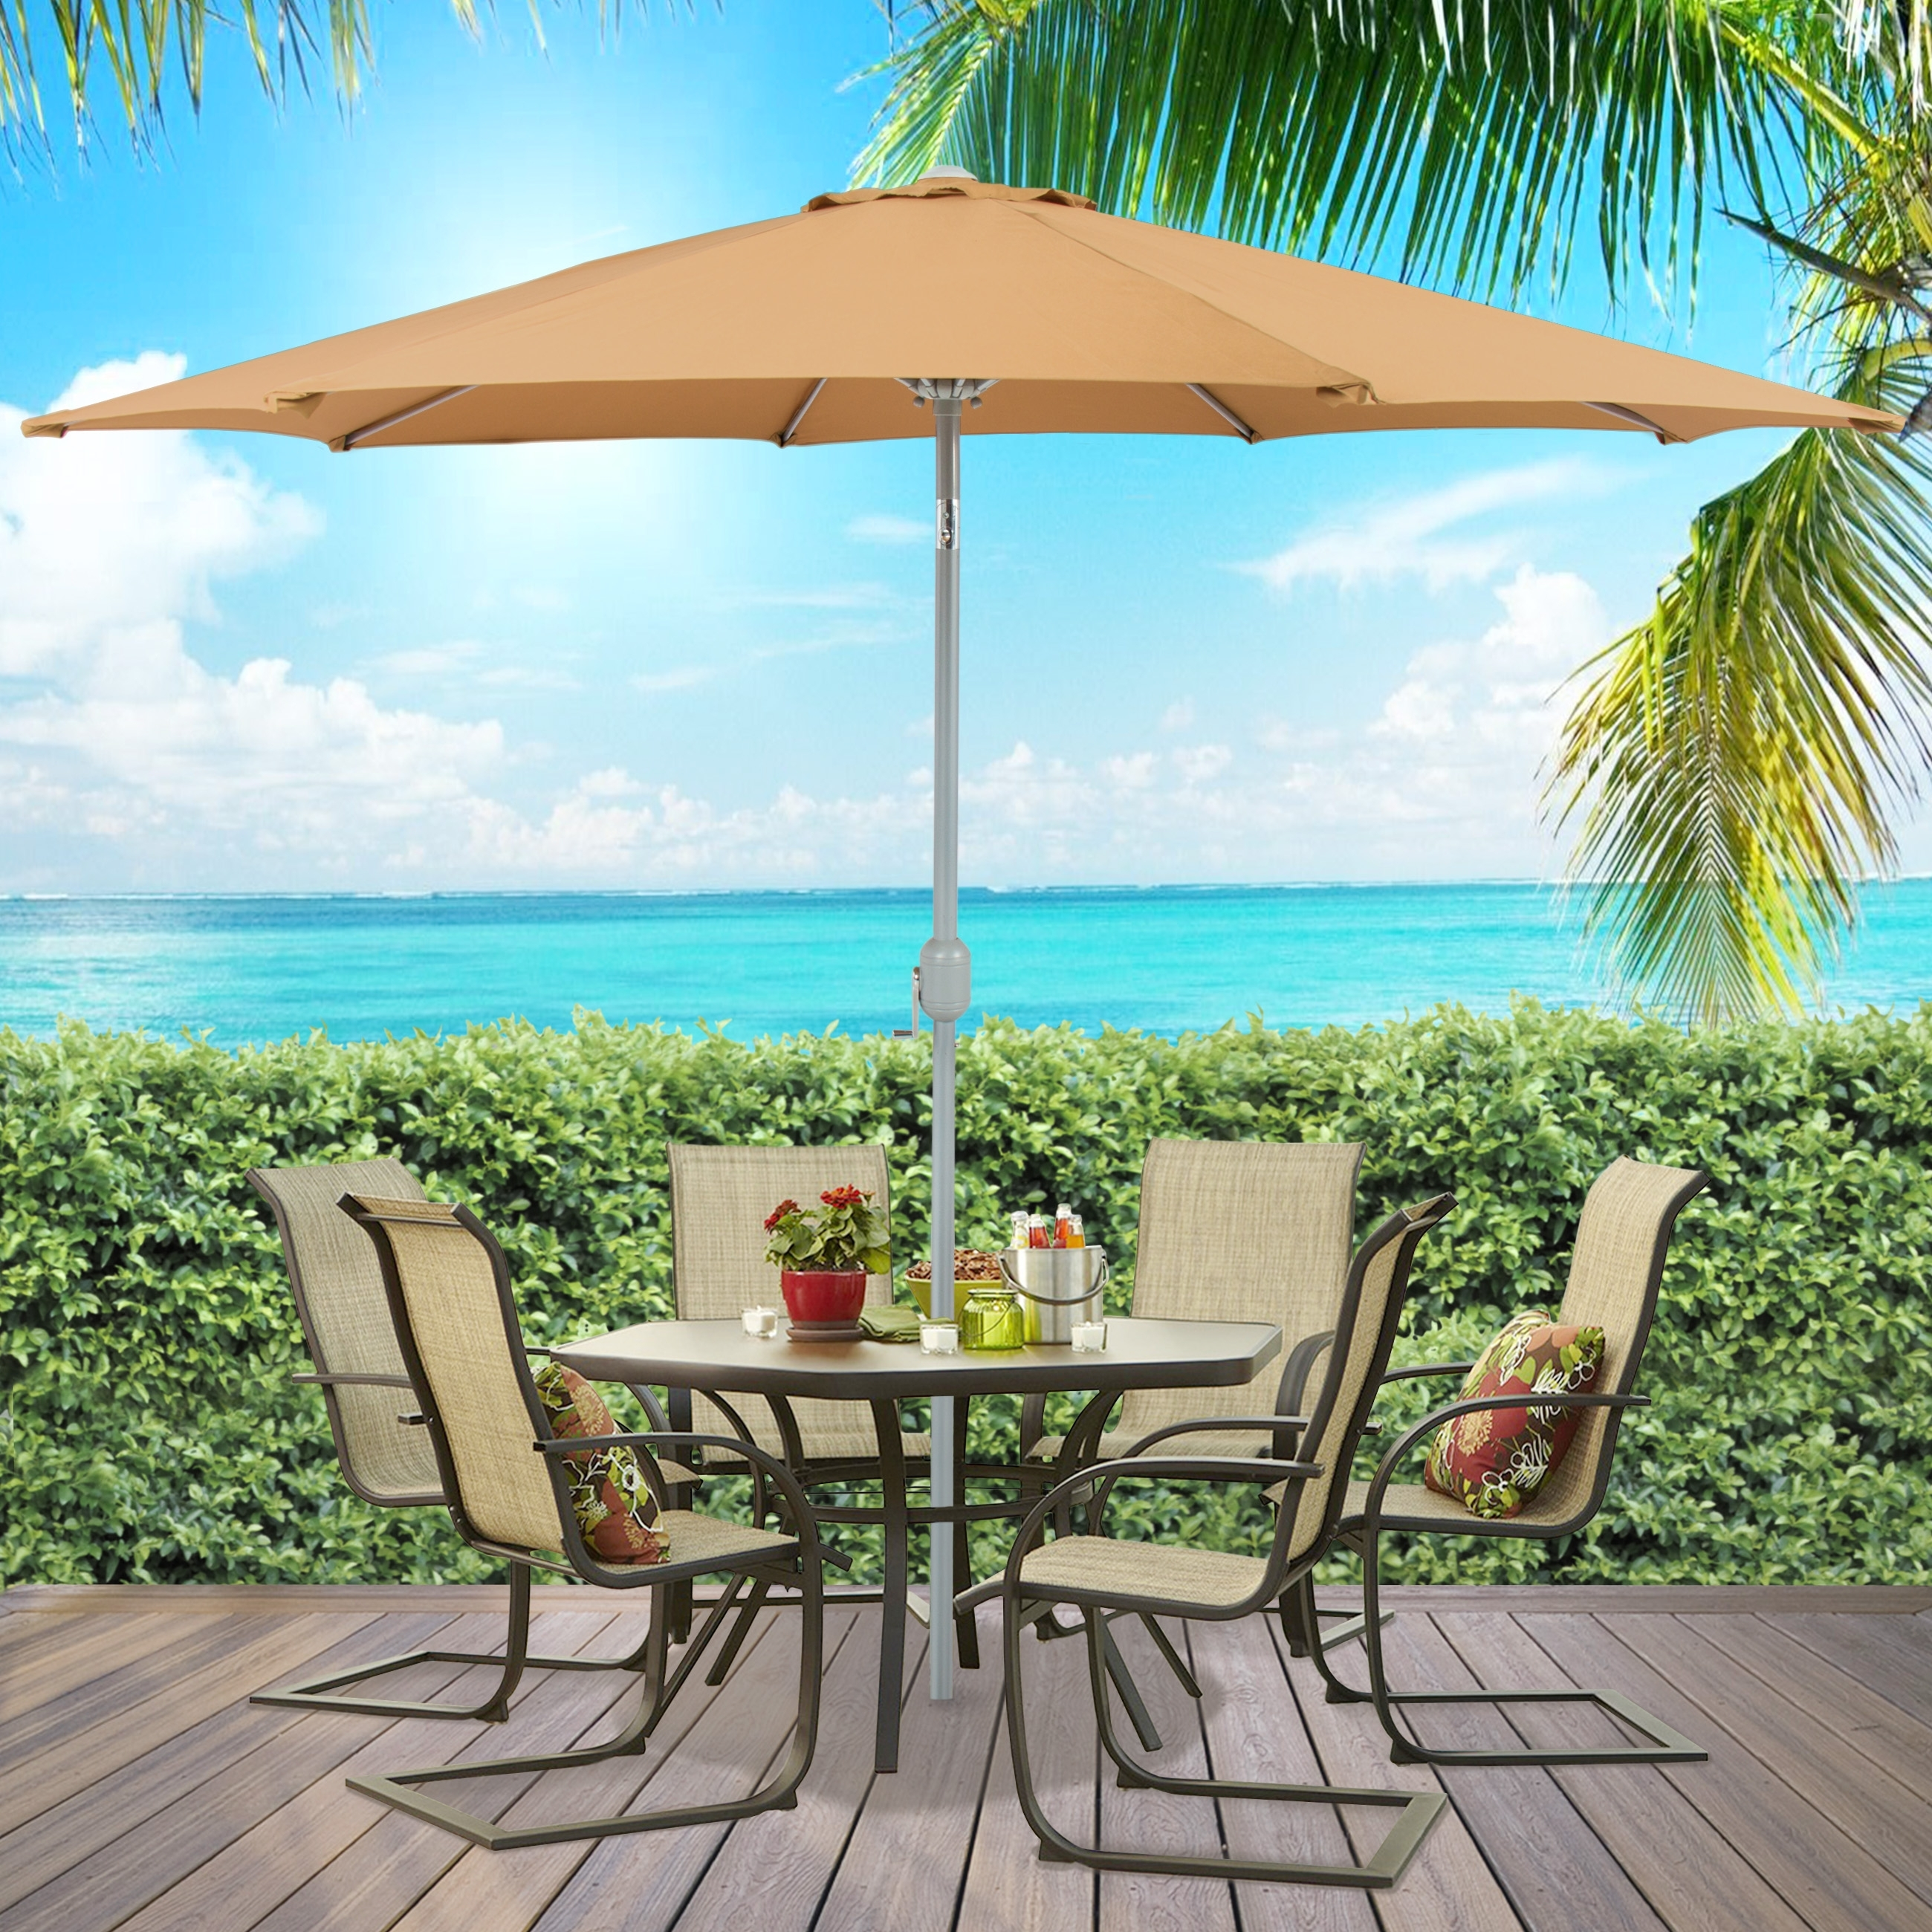 Best Choice Products Outdoor Furniture Wicker Rattan Patio Umbrella Pertaining To Most Up To Date Patio Umbrellas For Tables (Gallery 15 of 20)